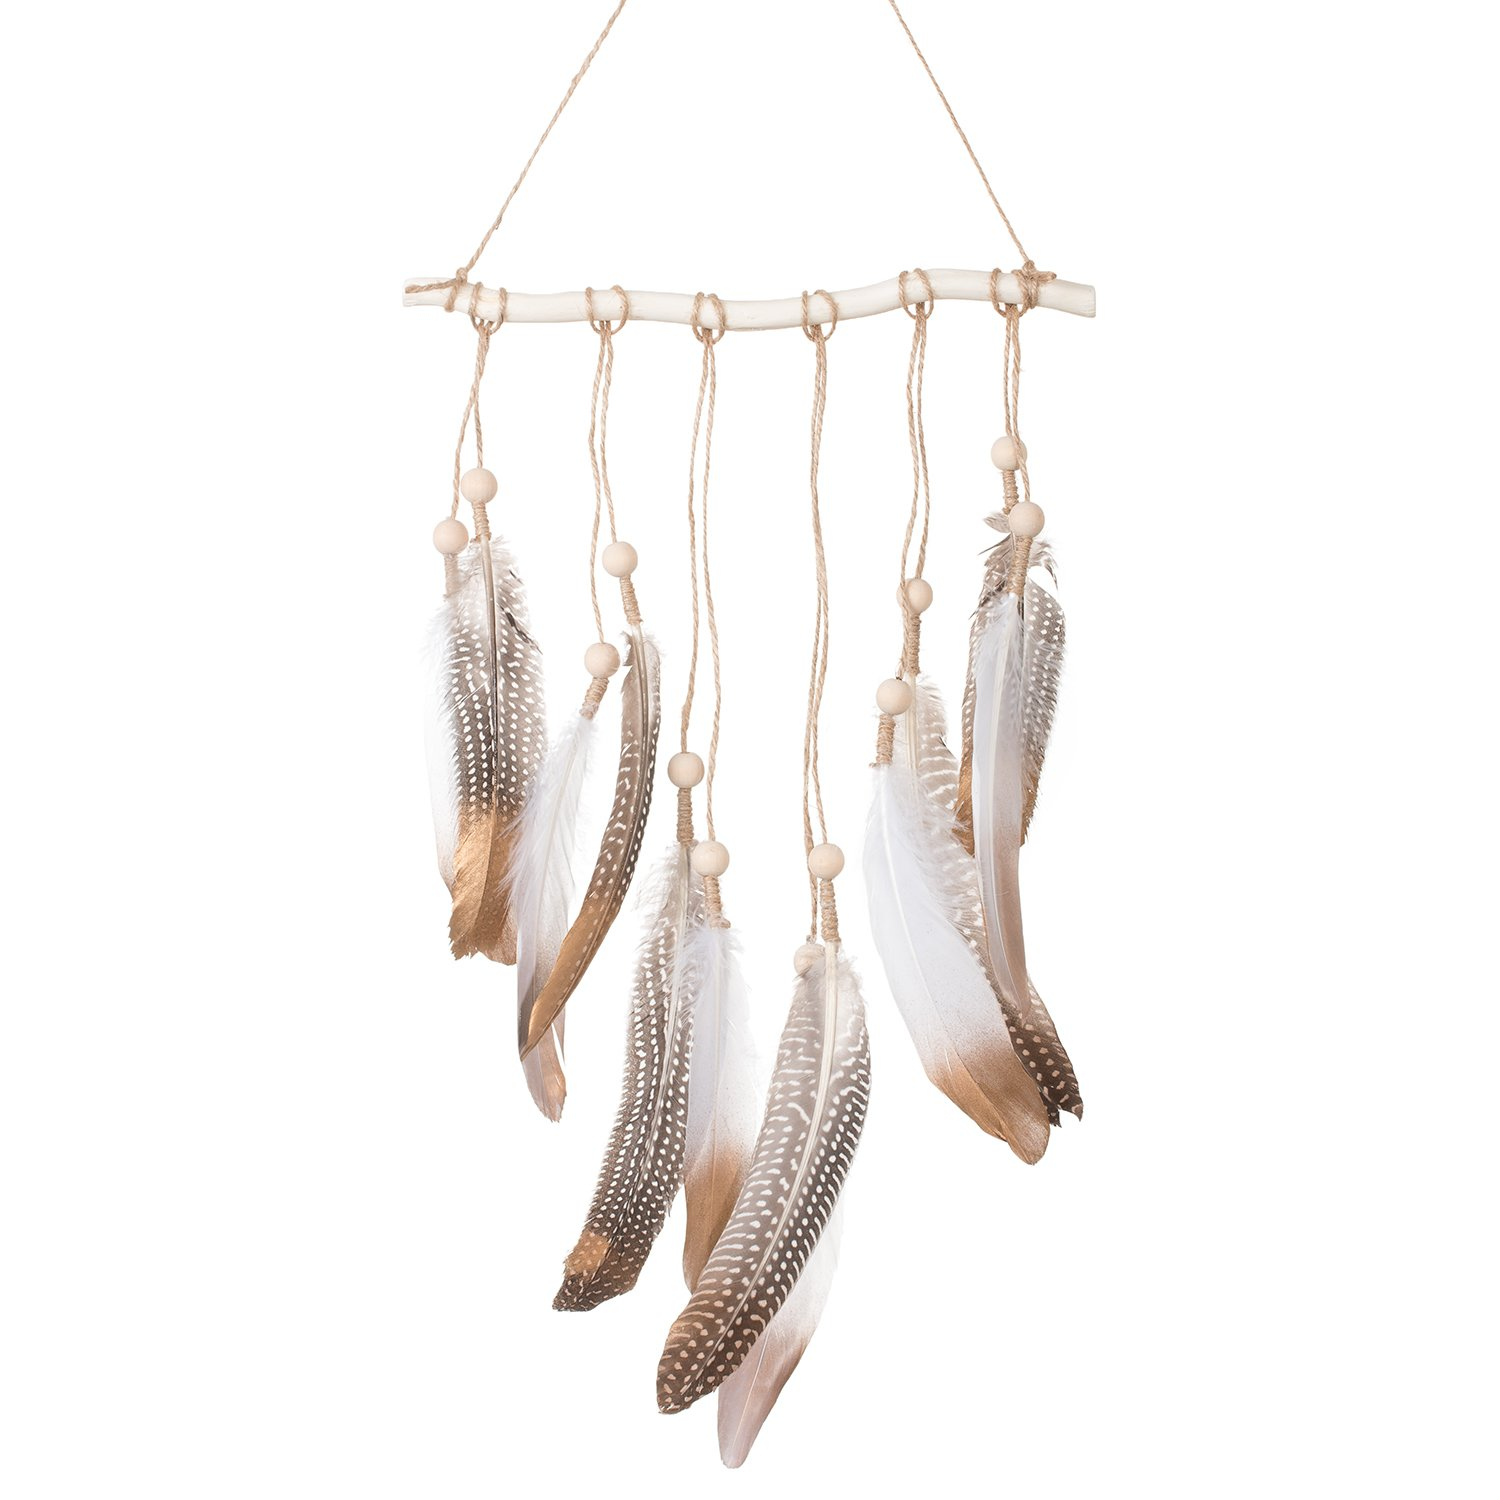 Ling's moment Bohemian Feather Wall Hanging Decorations Boho Bedroom Decor Wedding Gift Baby/Birdal Shower Decor by Ling's moment